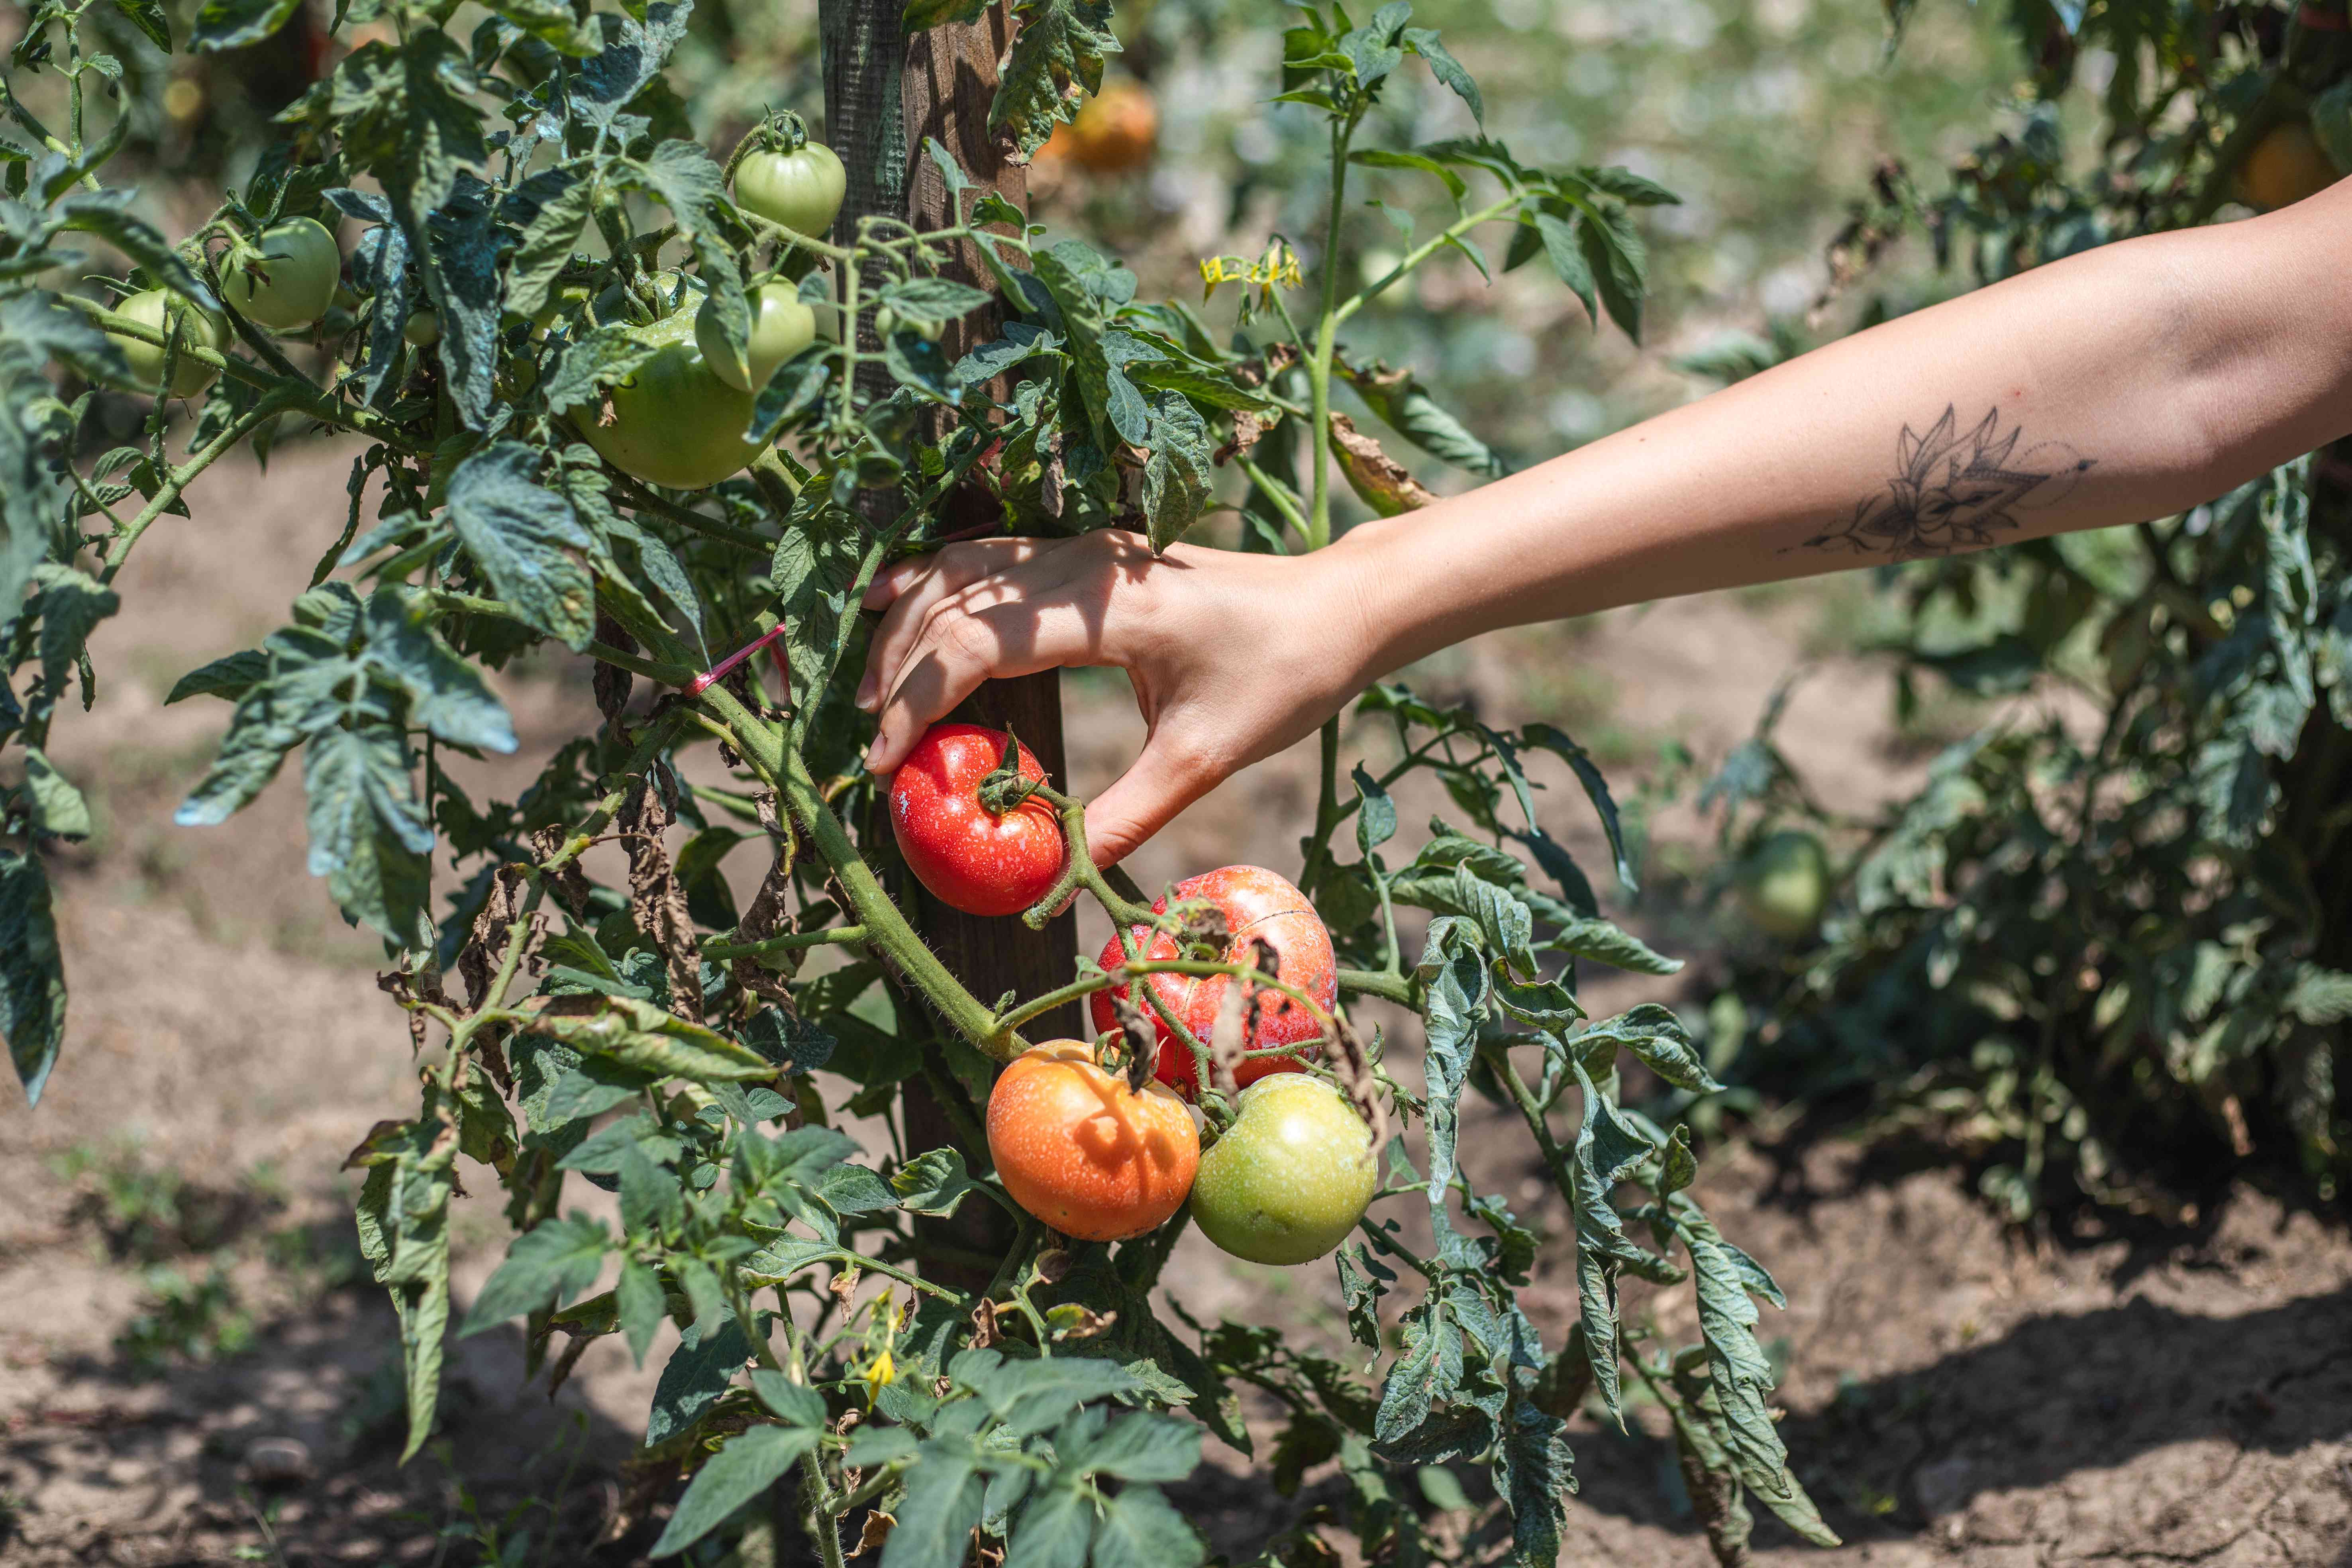 hand reaches out to puck ripe red tomato from growing tomato vine in garden